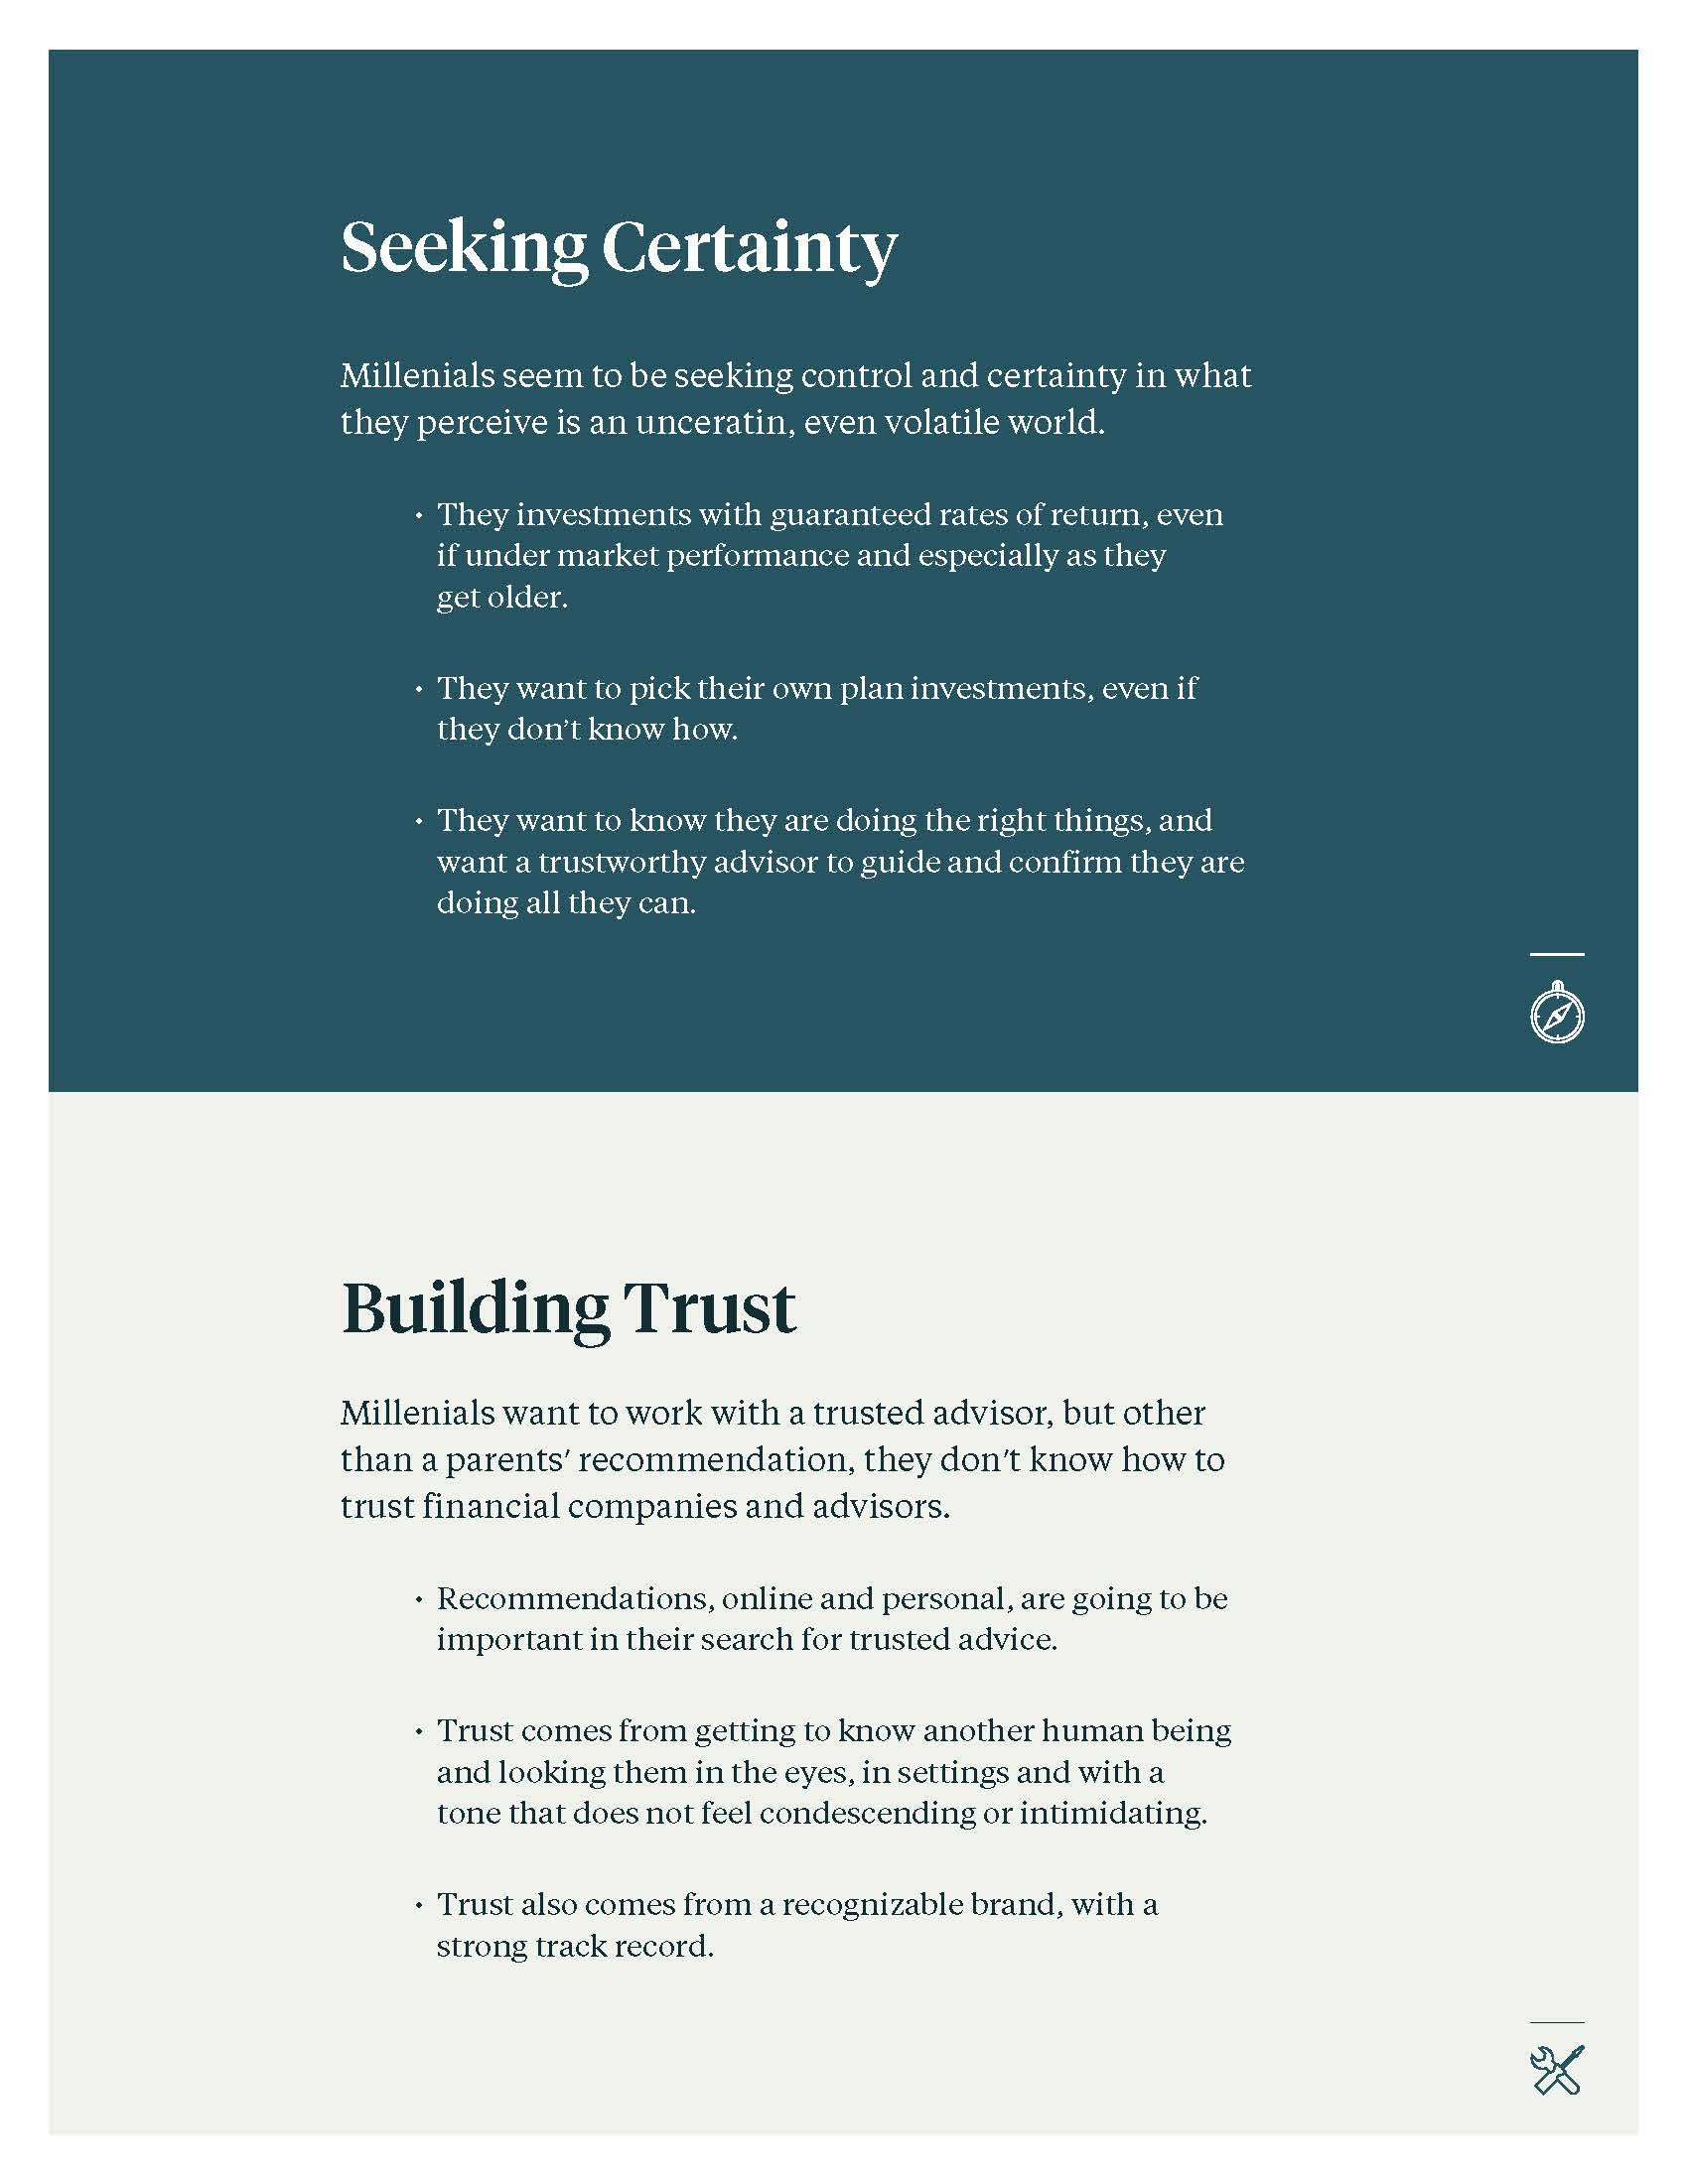 008_Security_Benefit_Design_Concept_R1_Page_11.jpg